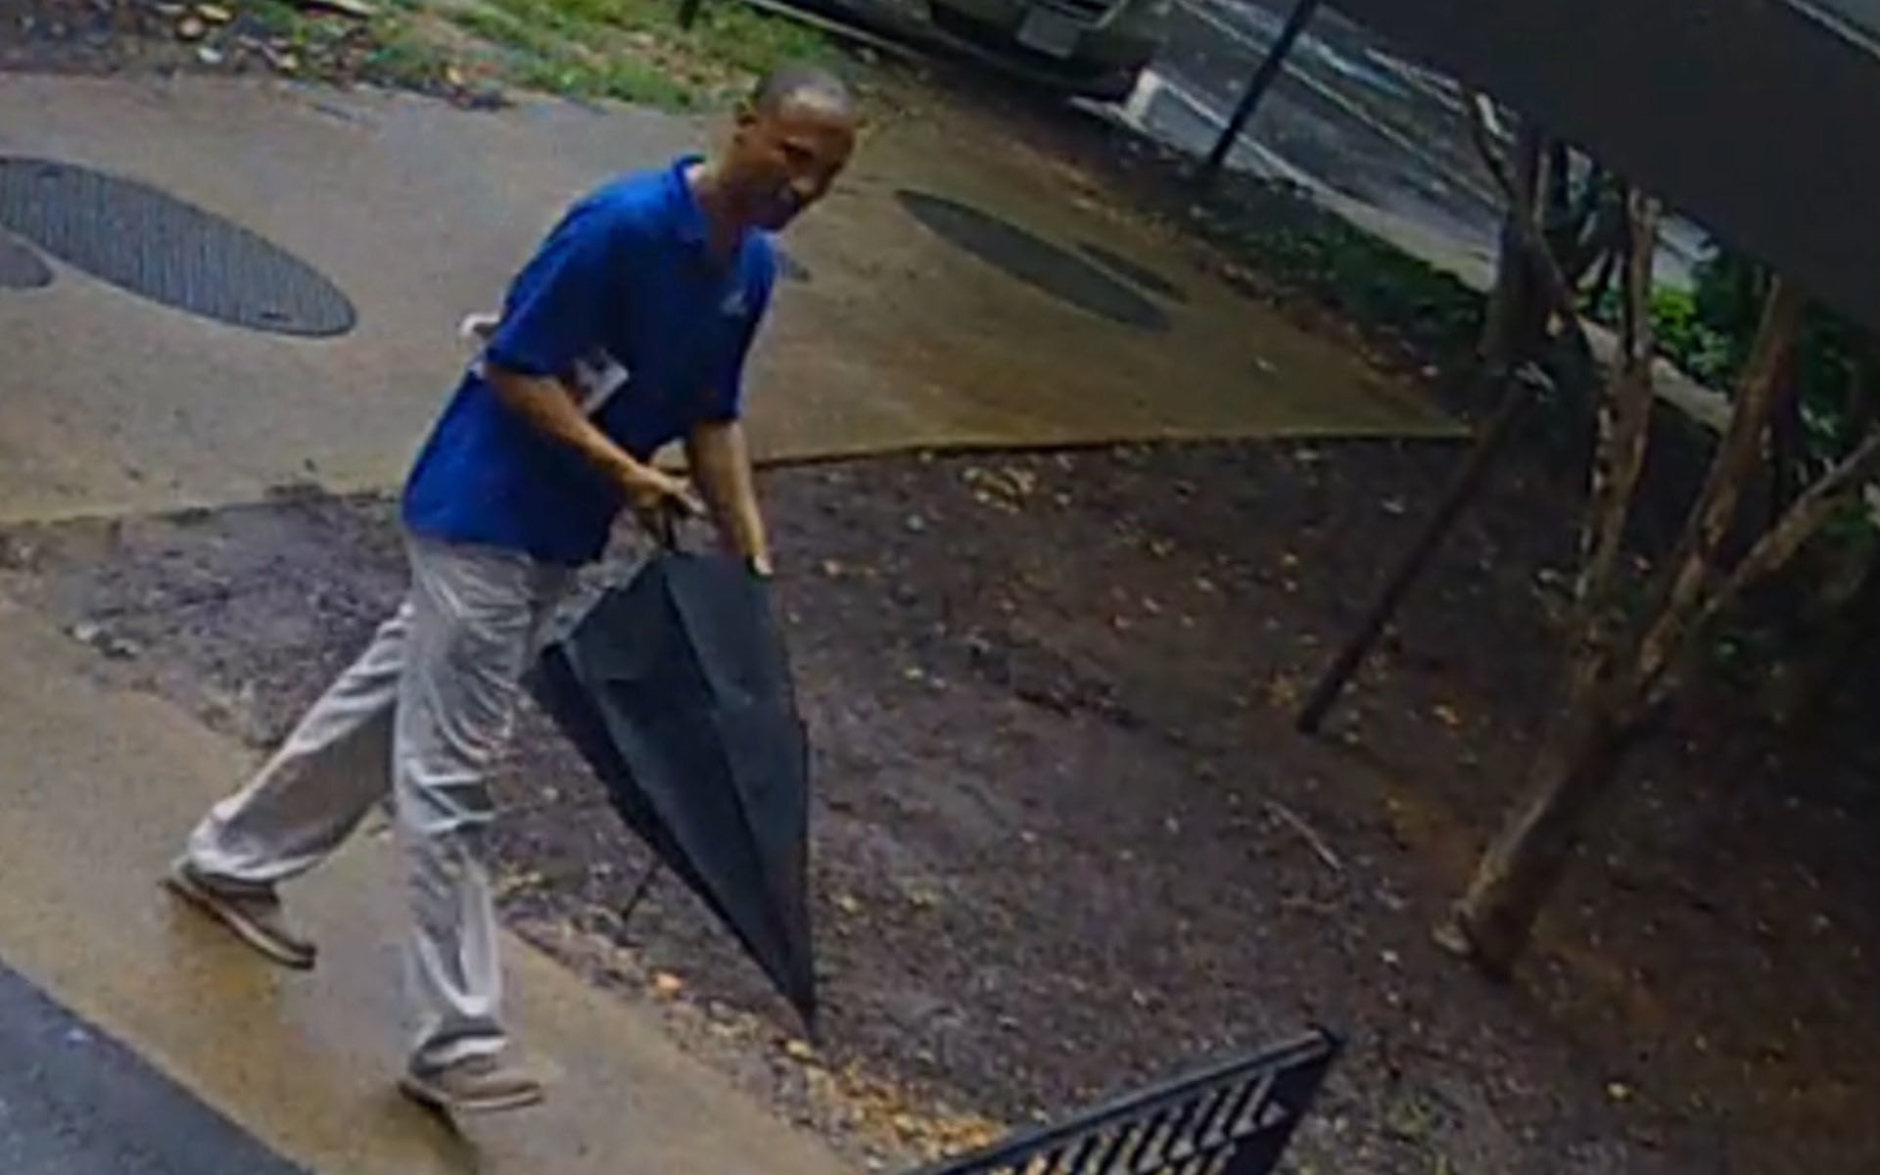 The suspect captured on surveillance video is described as black man, about 60 years, between 5 feet, 10 inches and 6 feet tall with a medium build. He has dark short curly hair with some gray. He was wearing a bright blue shirt, khaki pants, tan shoes and was carrying an umbrella at the time, police said. (Courtesy Arlington County police)